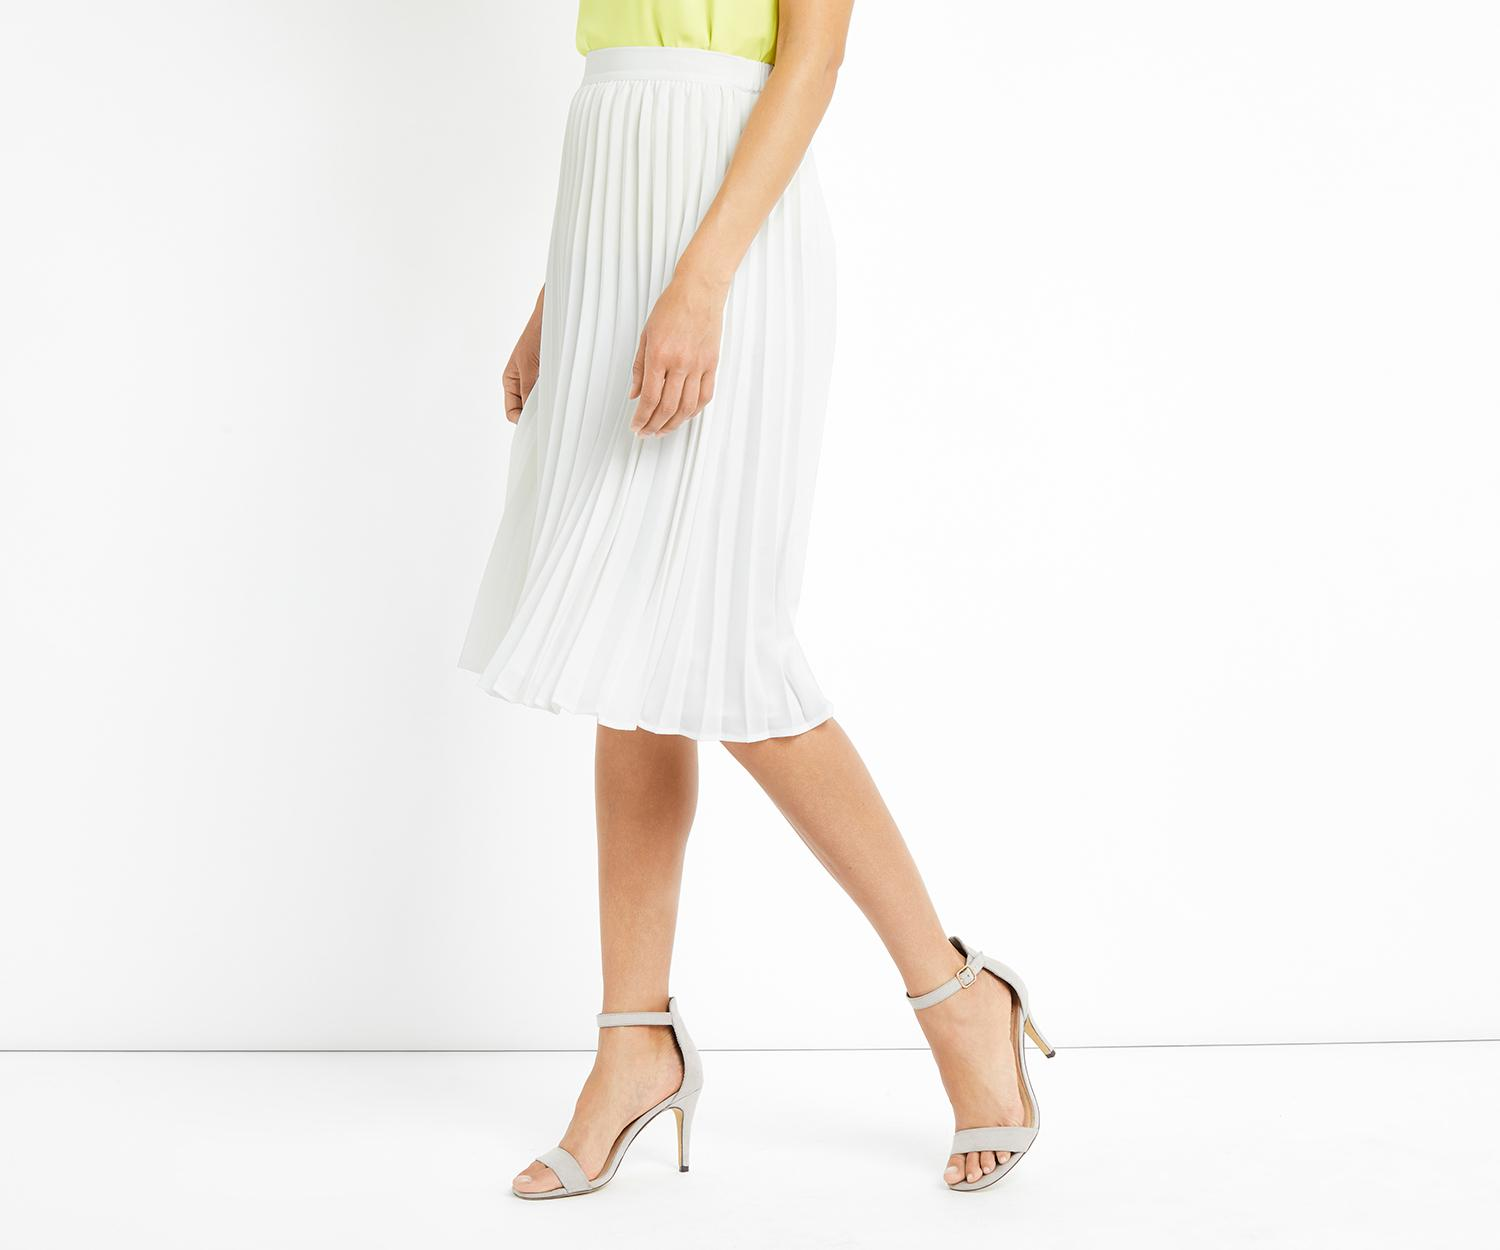 543ccf54a Oasis Lucia Pleated Skirt in White - Lyst